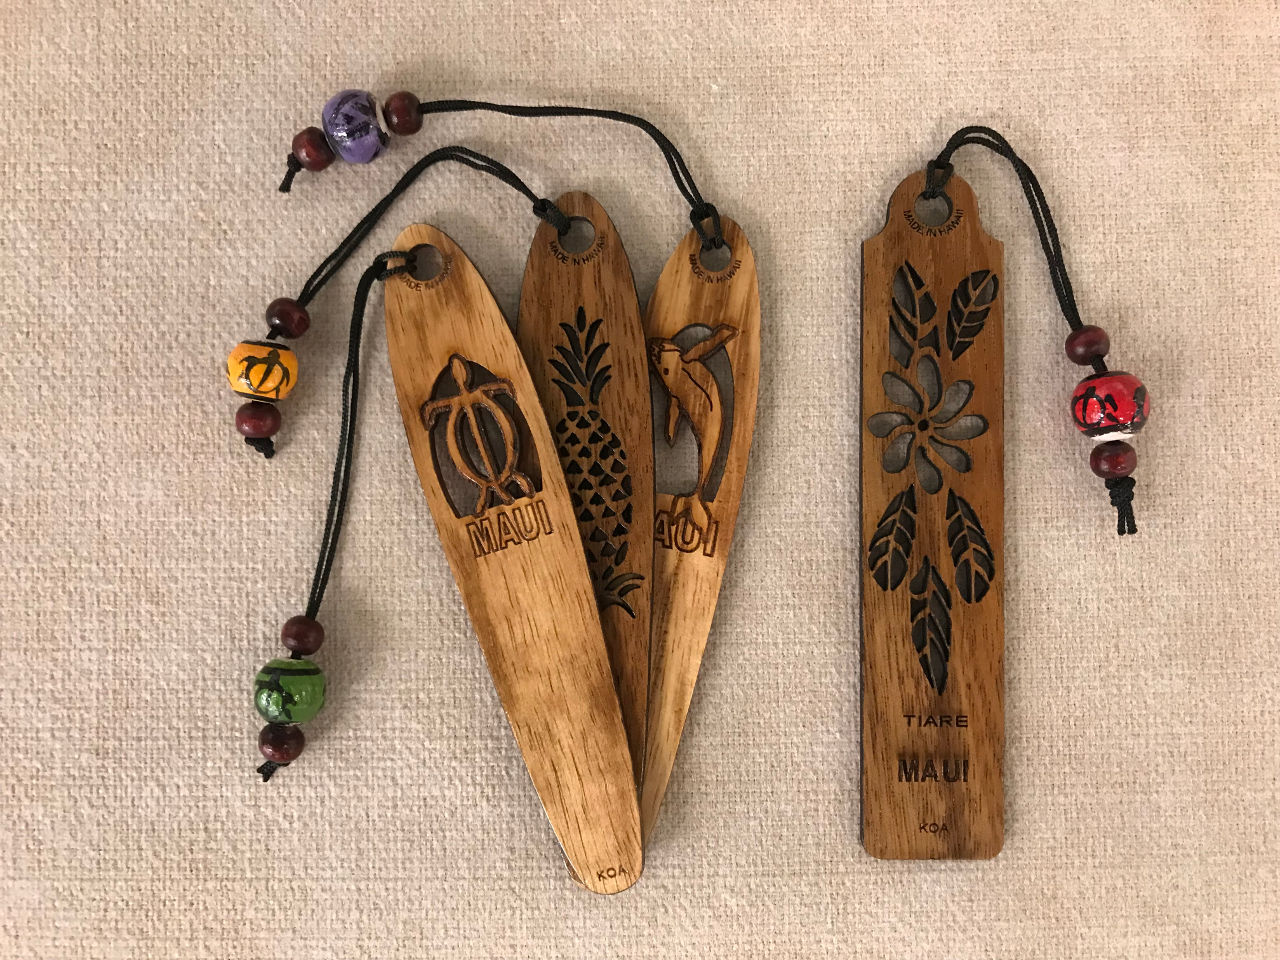 Koa Bookmarks